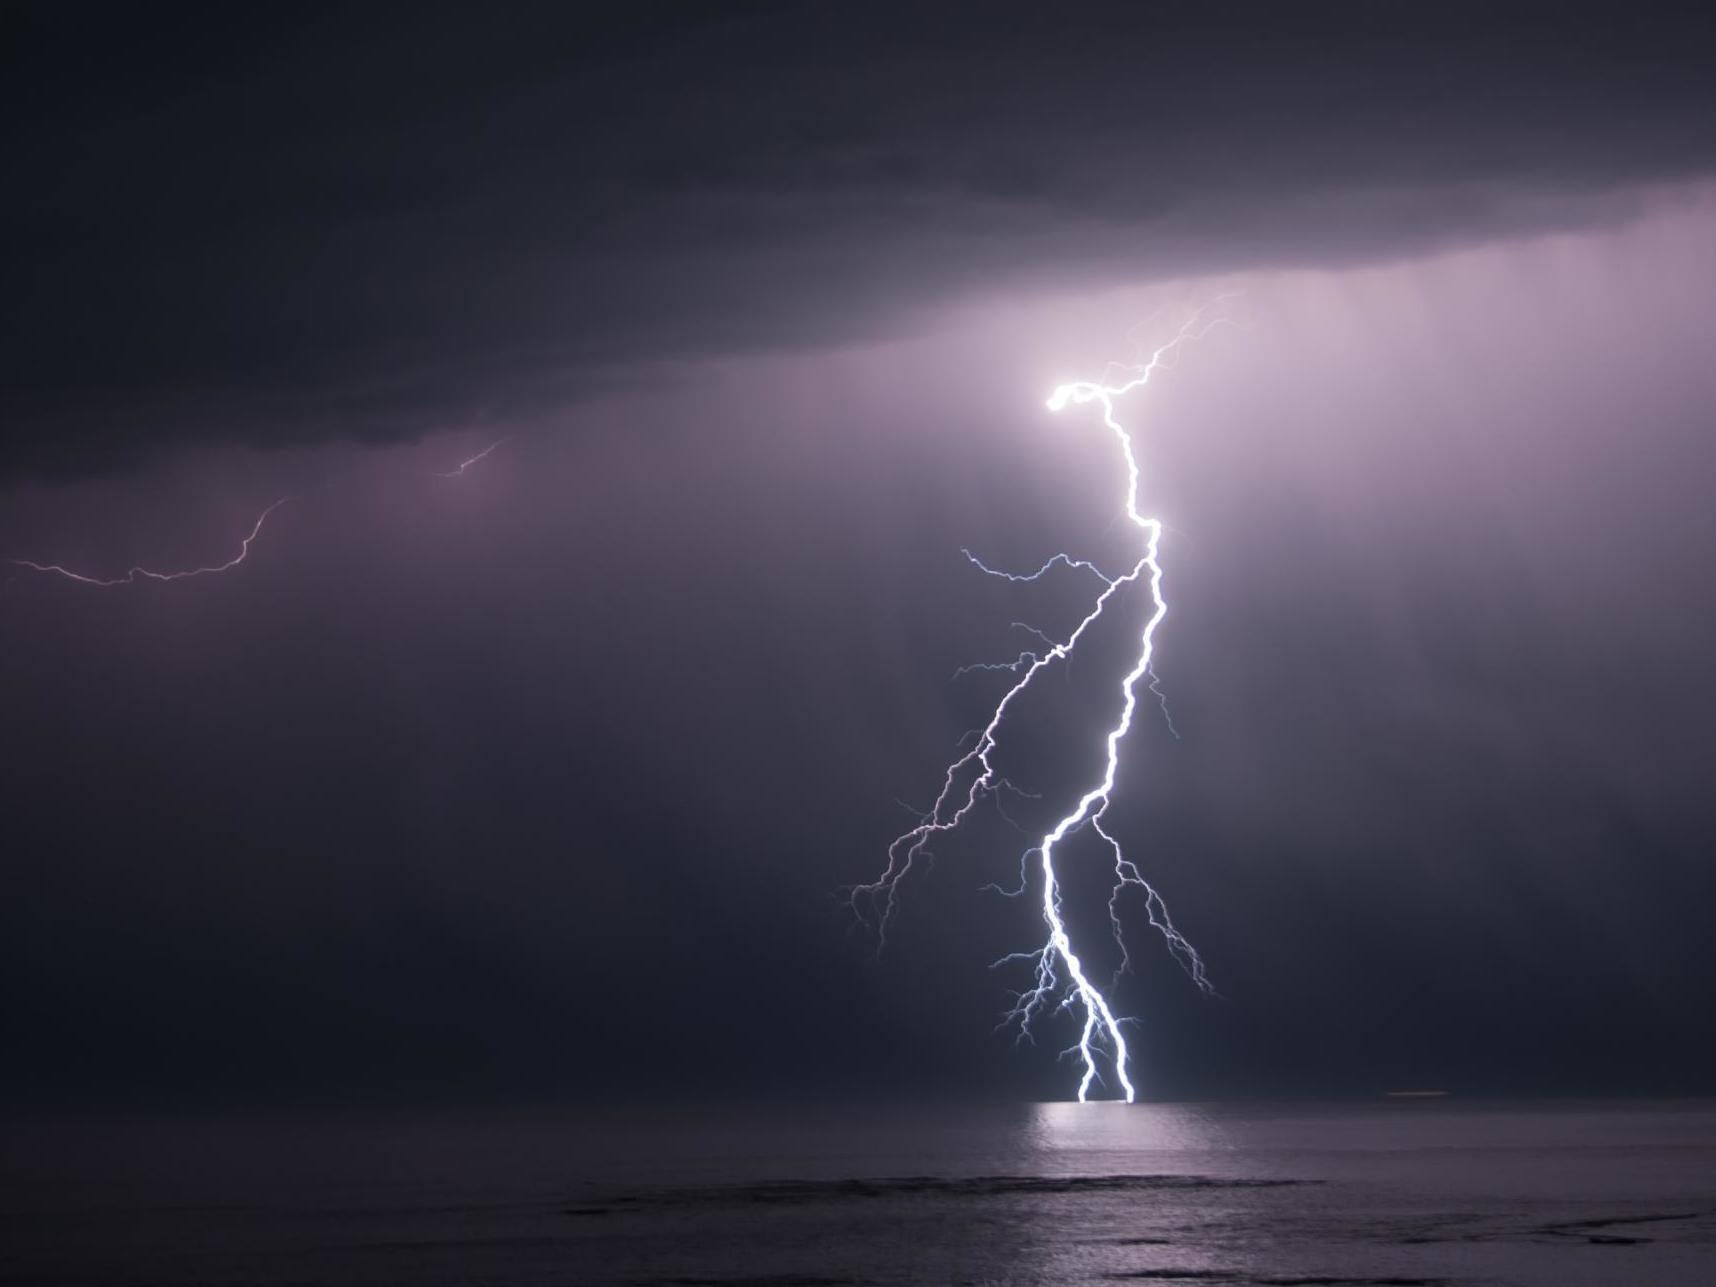 lightning - latest news, breaking stories and comment - The ...